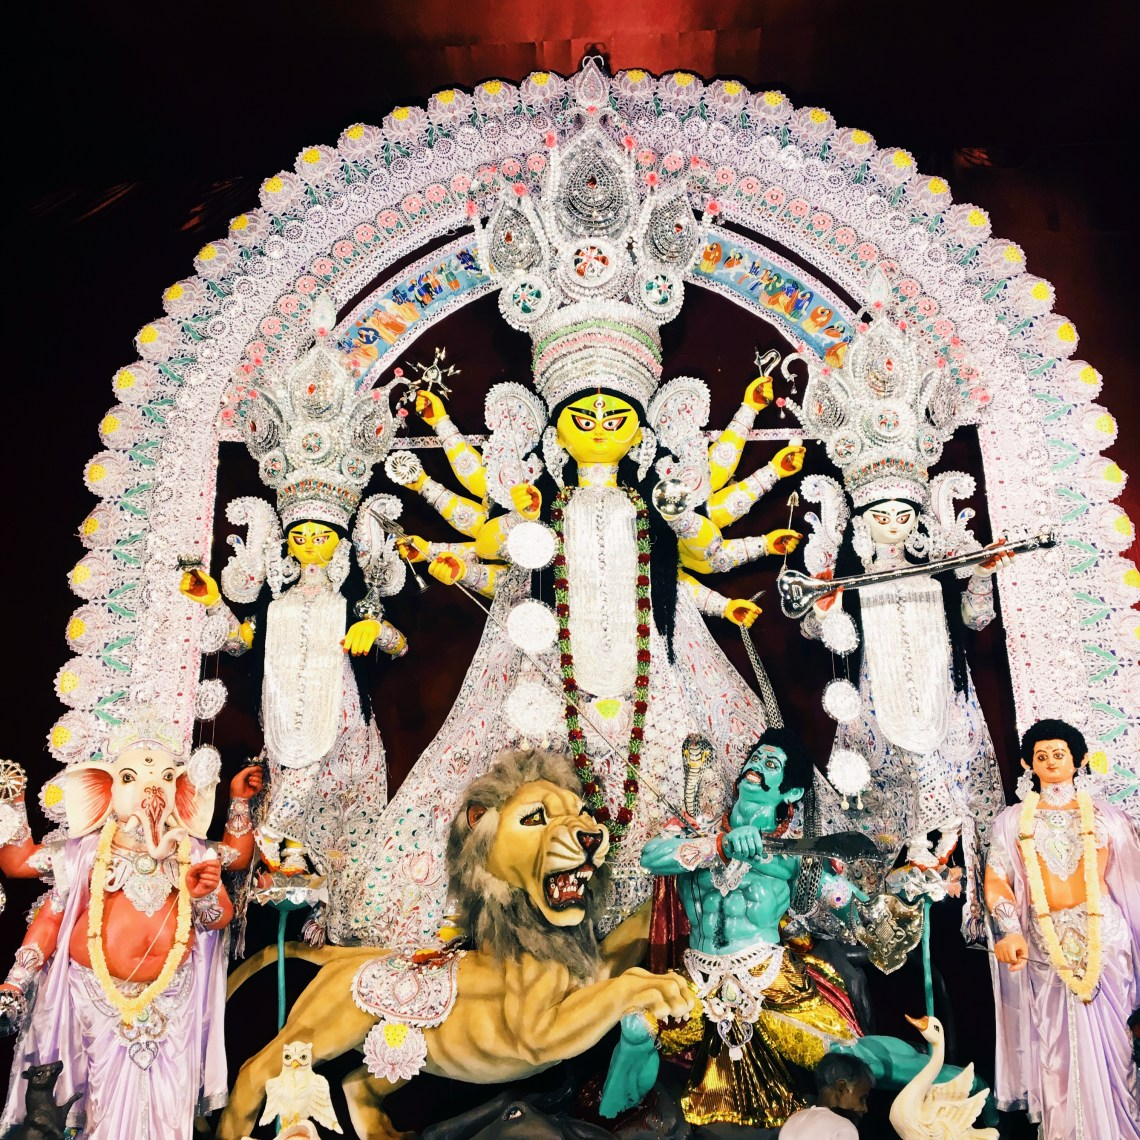 The Idol in one of the pandals of Durga Puja Festival.